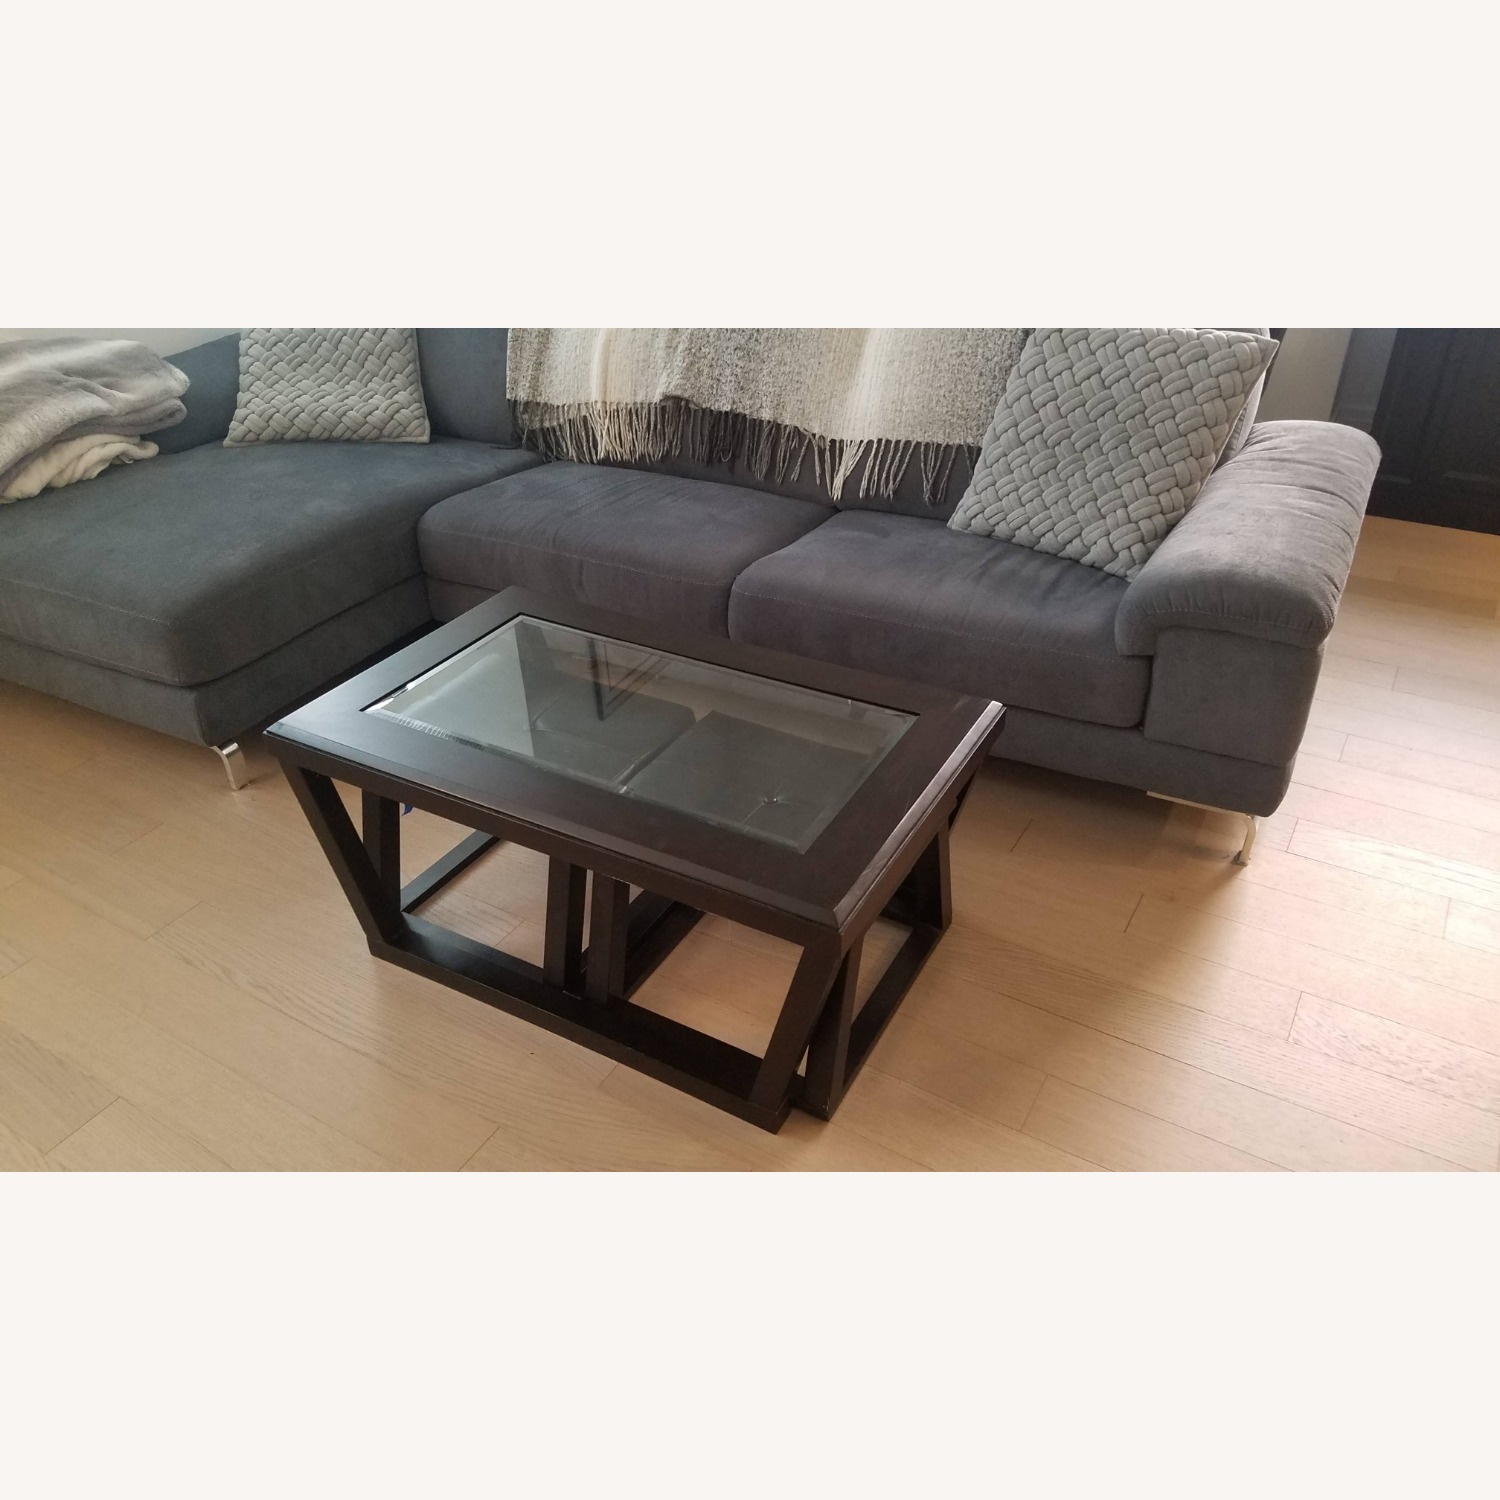 Black Wood and Glass Coffee Table with 2 Ottomans - image-3